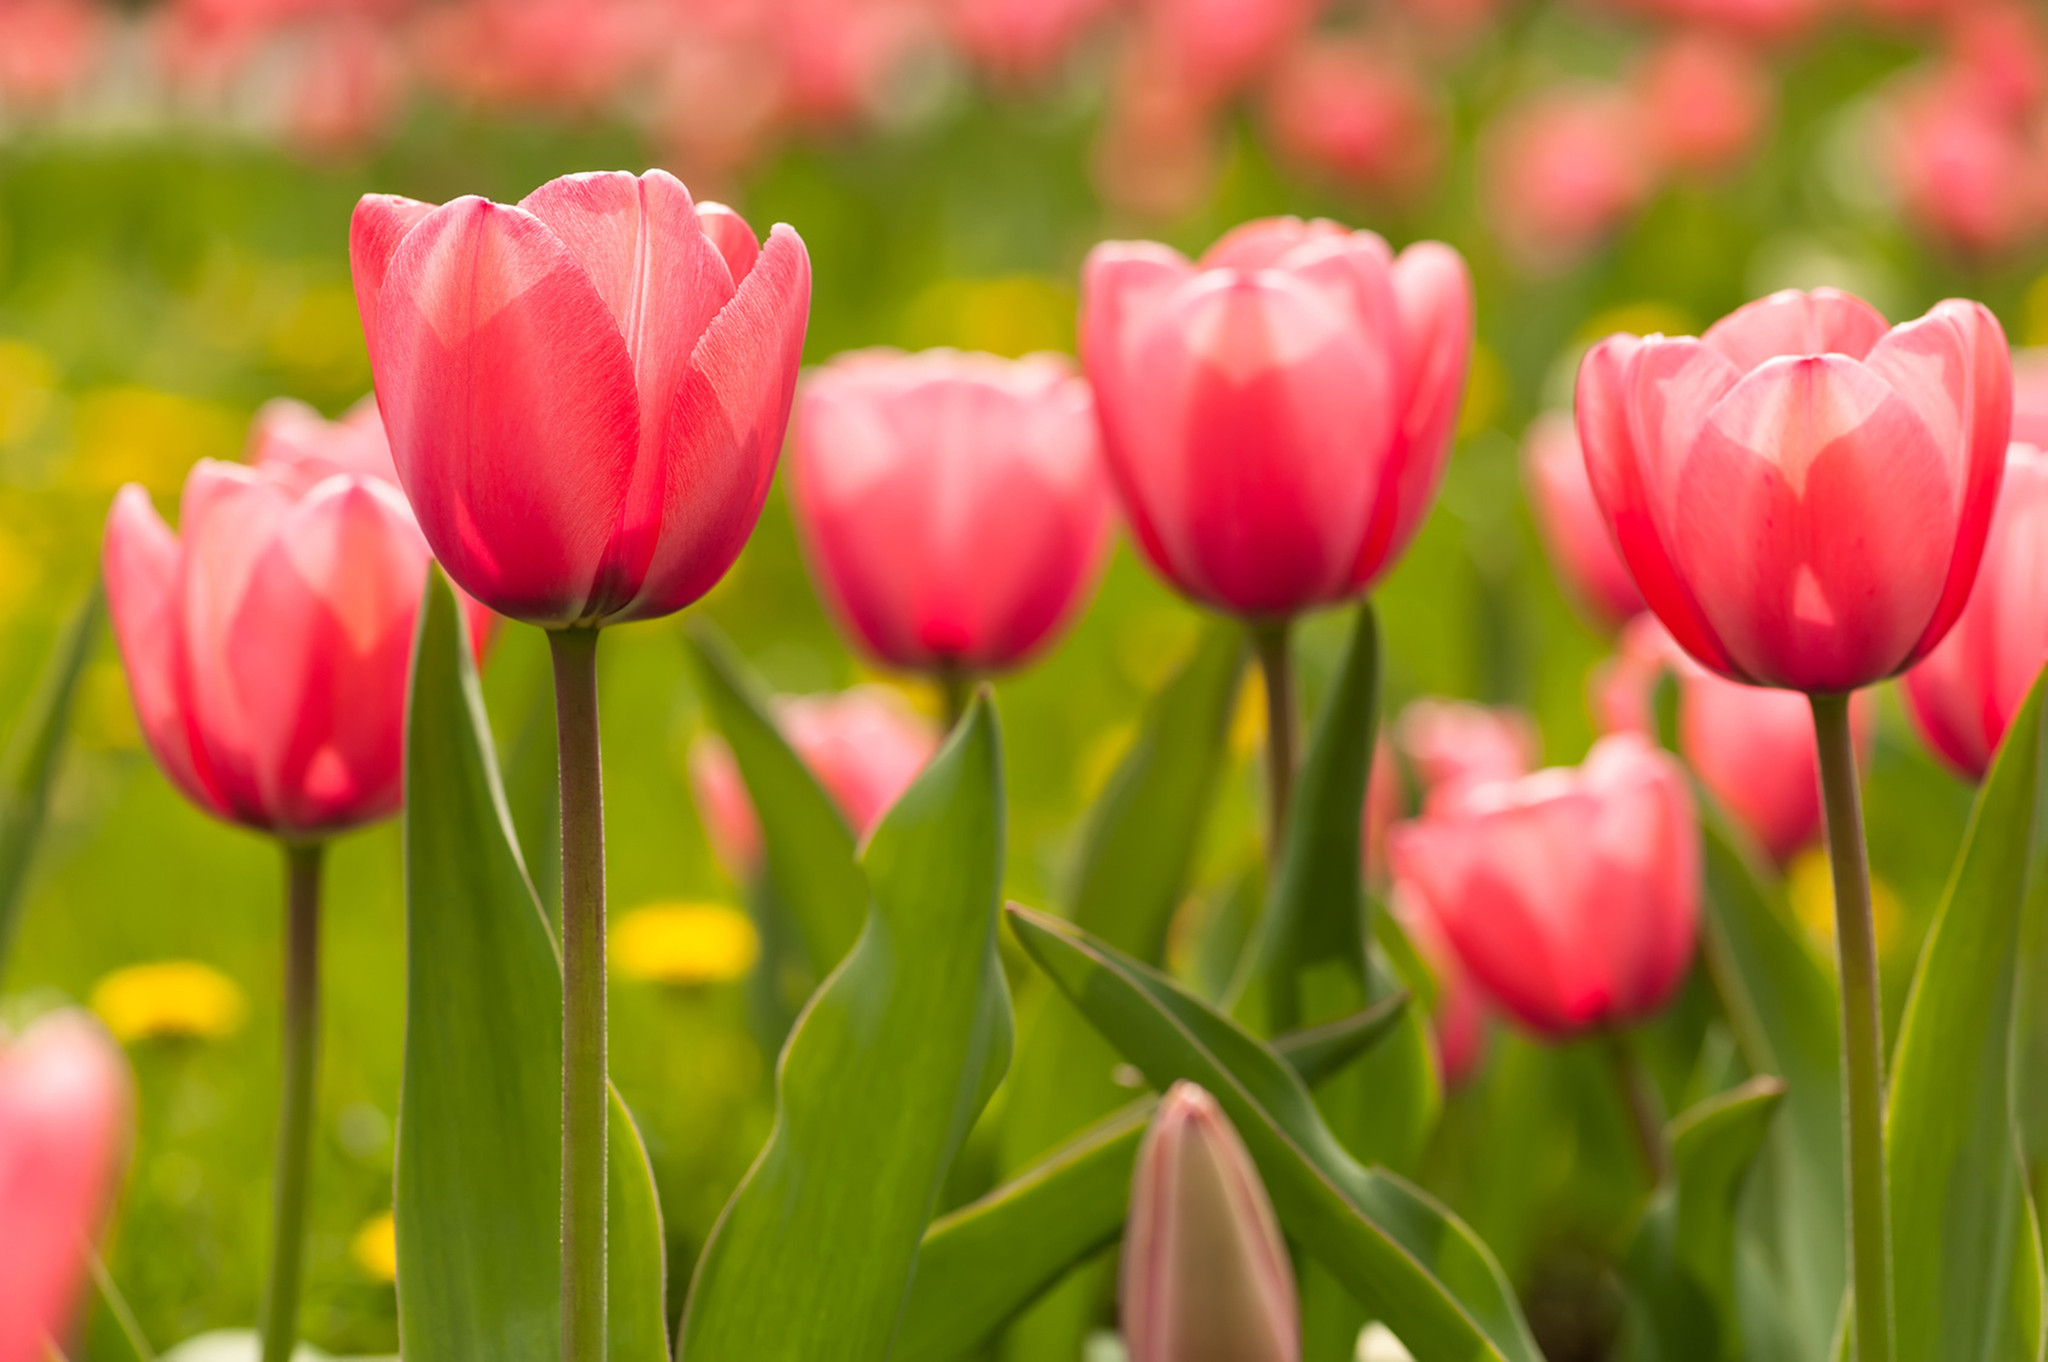 If you want tulips to return, here are some tips - Chicago Tribune